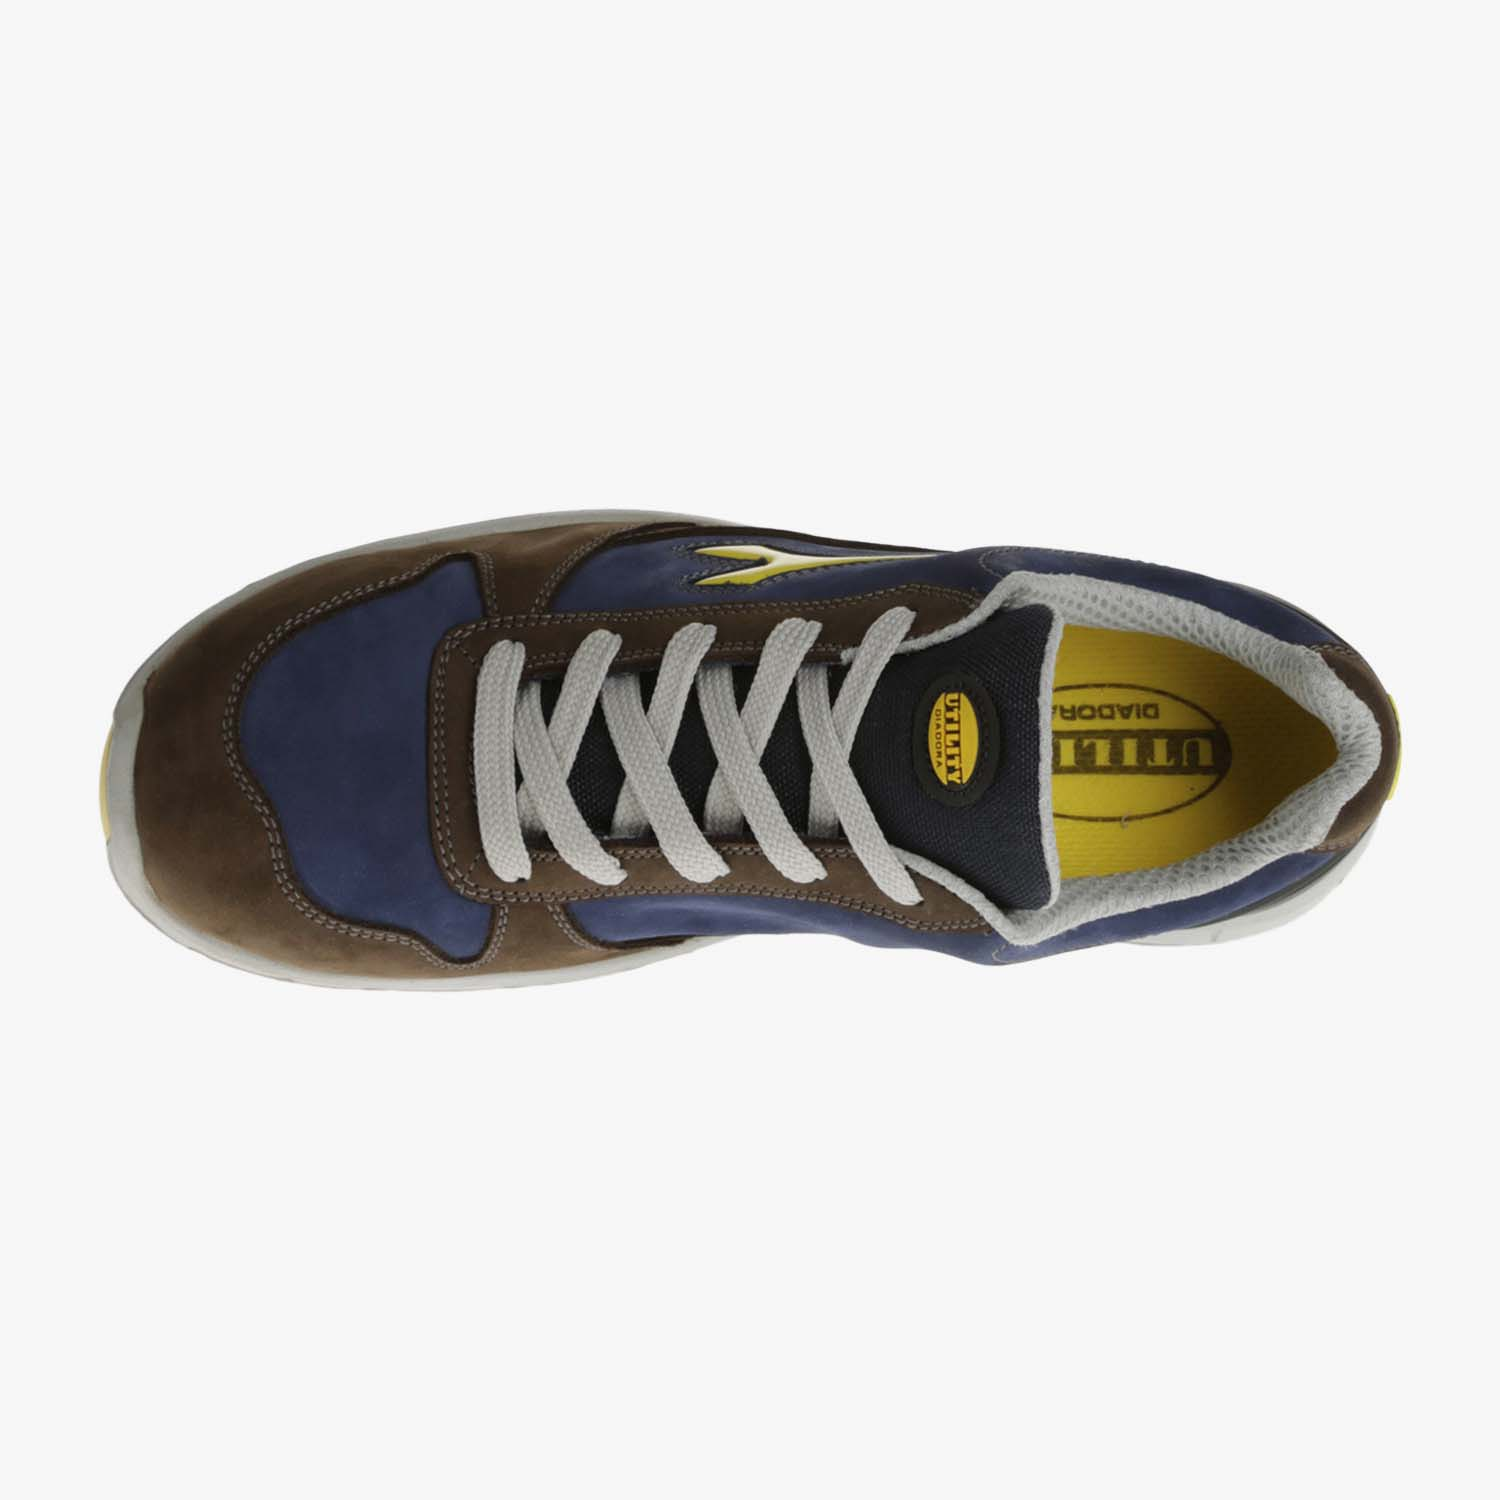 SCARPA DIADORA RUN LOW S3 MARRONE SCURO E BLU